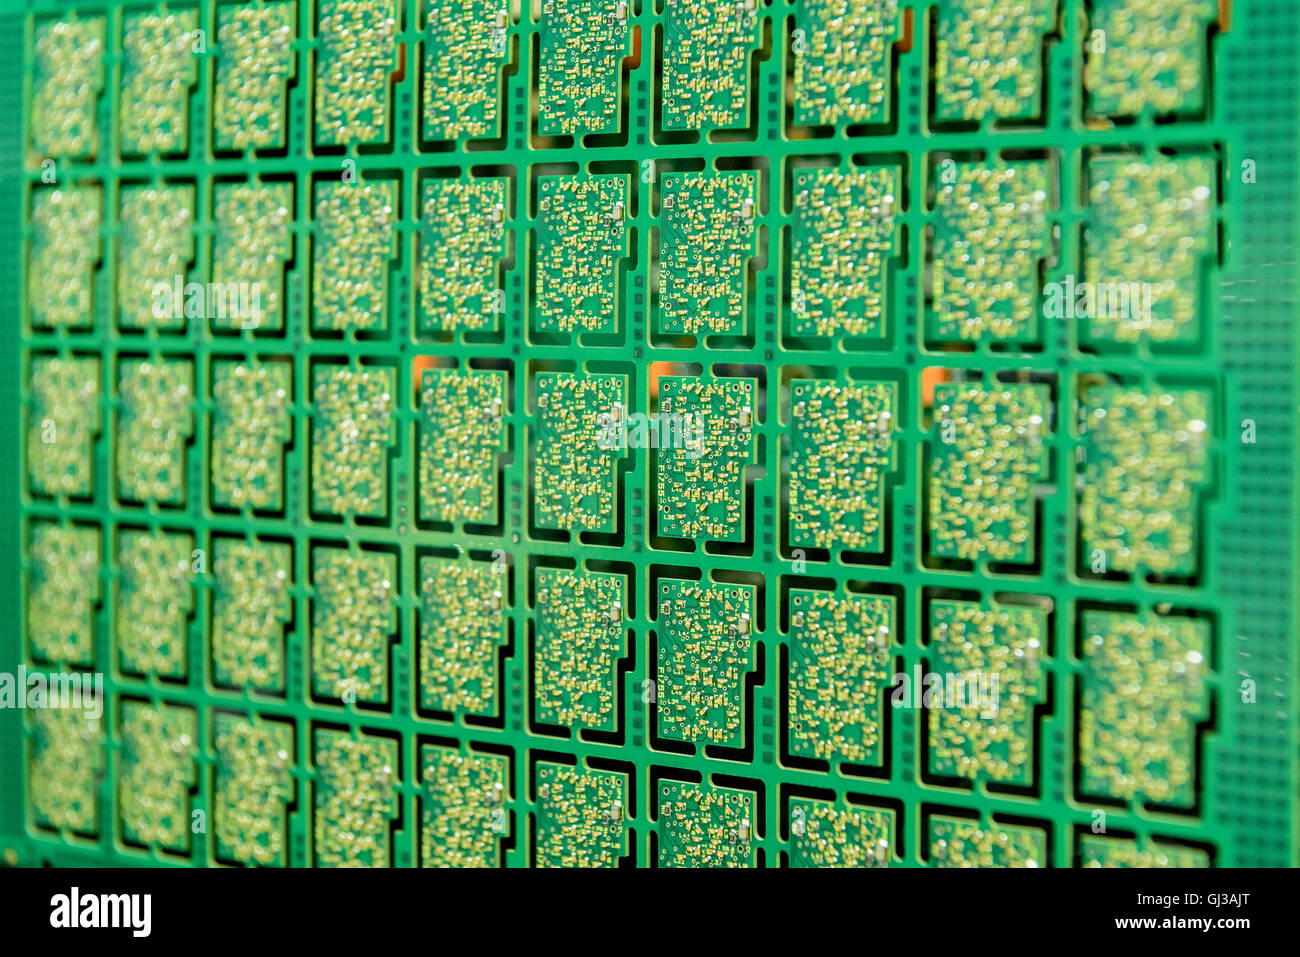 Detail of circuit boards in circuit board assembly factory, close up - Stock Image